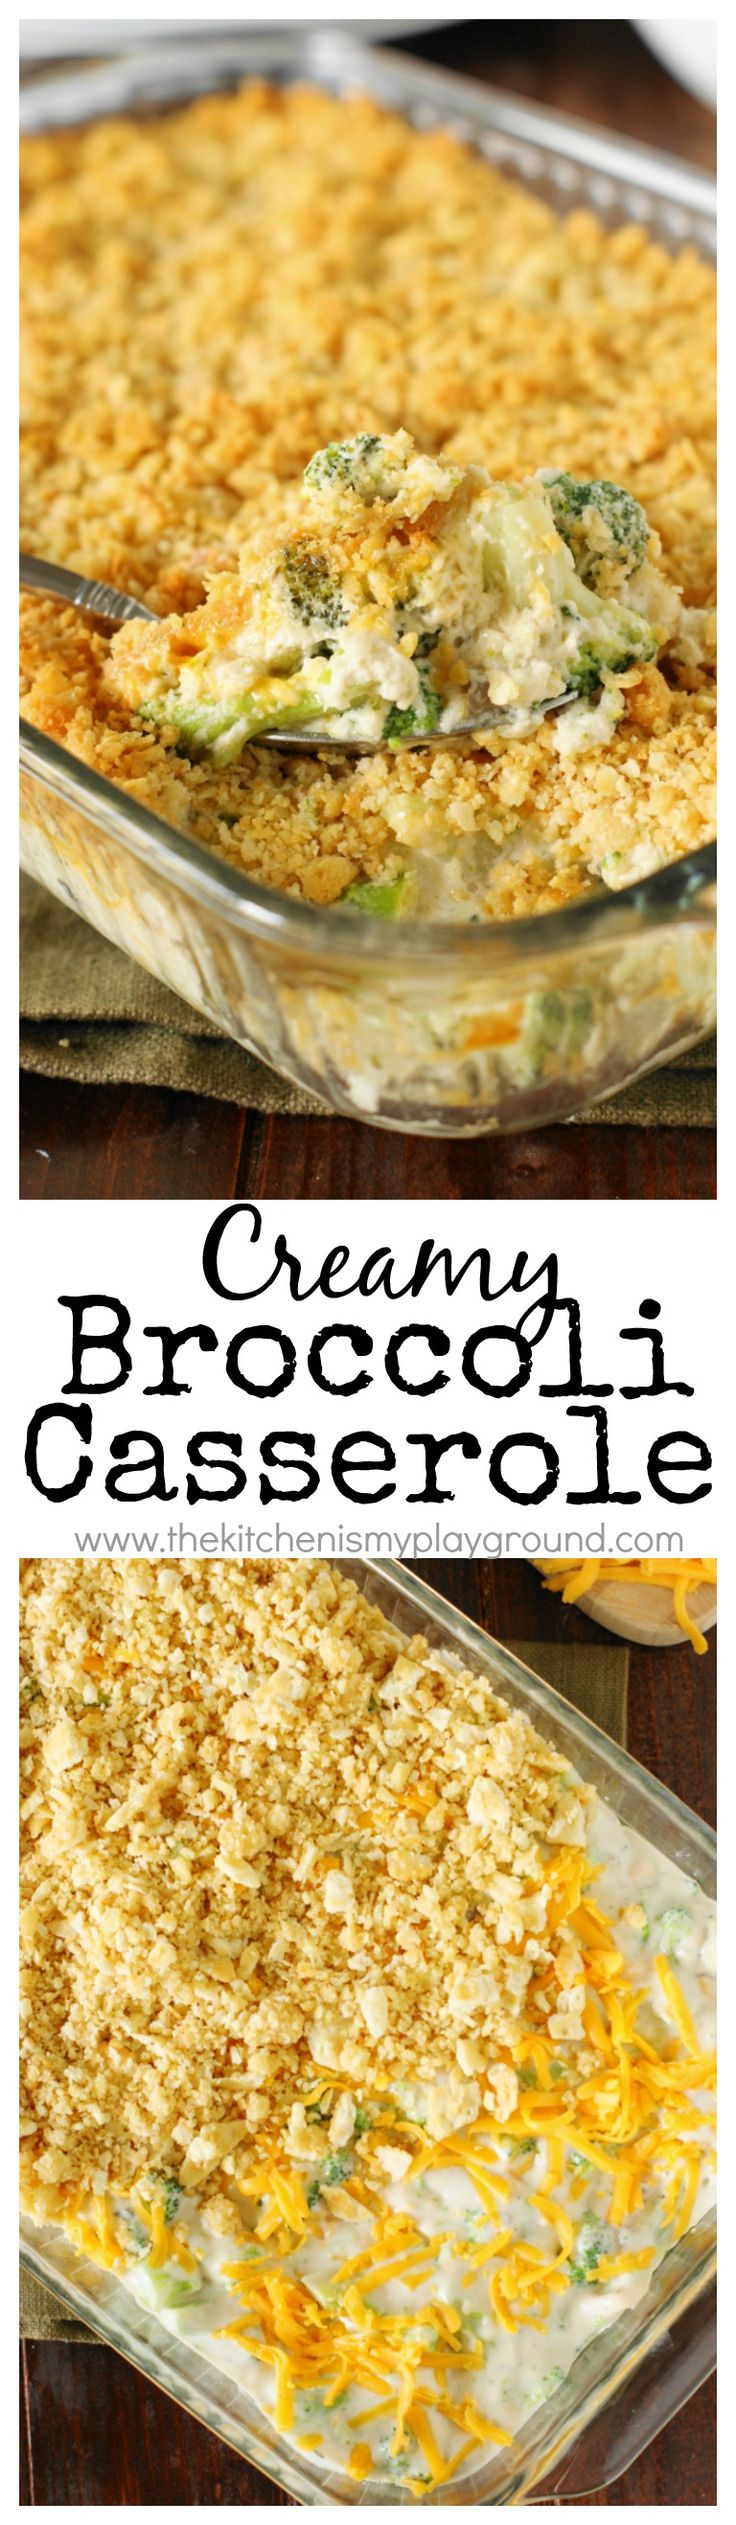 Creamy Broccoli Casserole ~ A family-favorite. With its cheesy broccoli goodness & buttered cracker topping, what's not to love?  A perfect side for Thanksgiving, Christmas, or any day!  www.thekitchenismyplayground.com